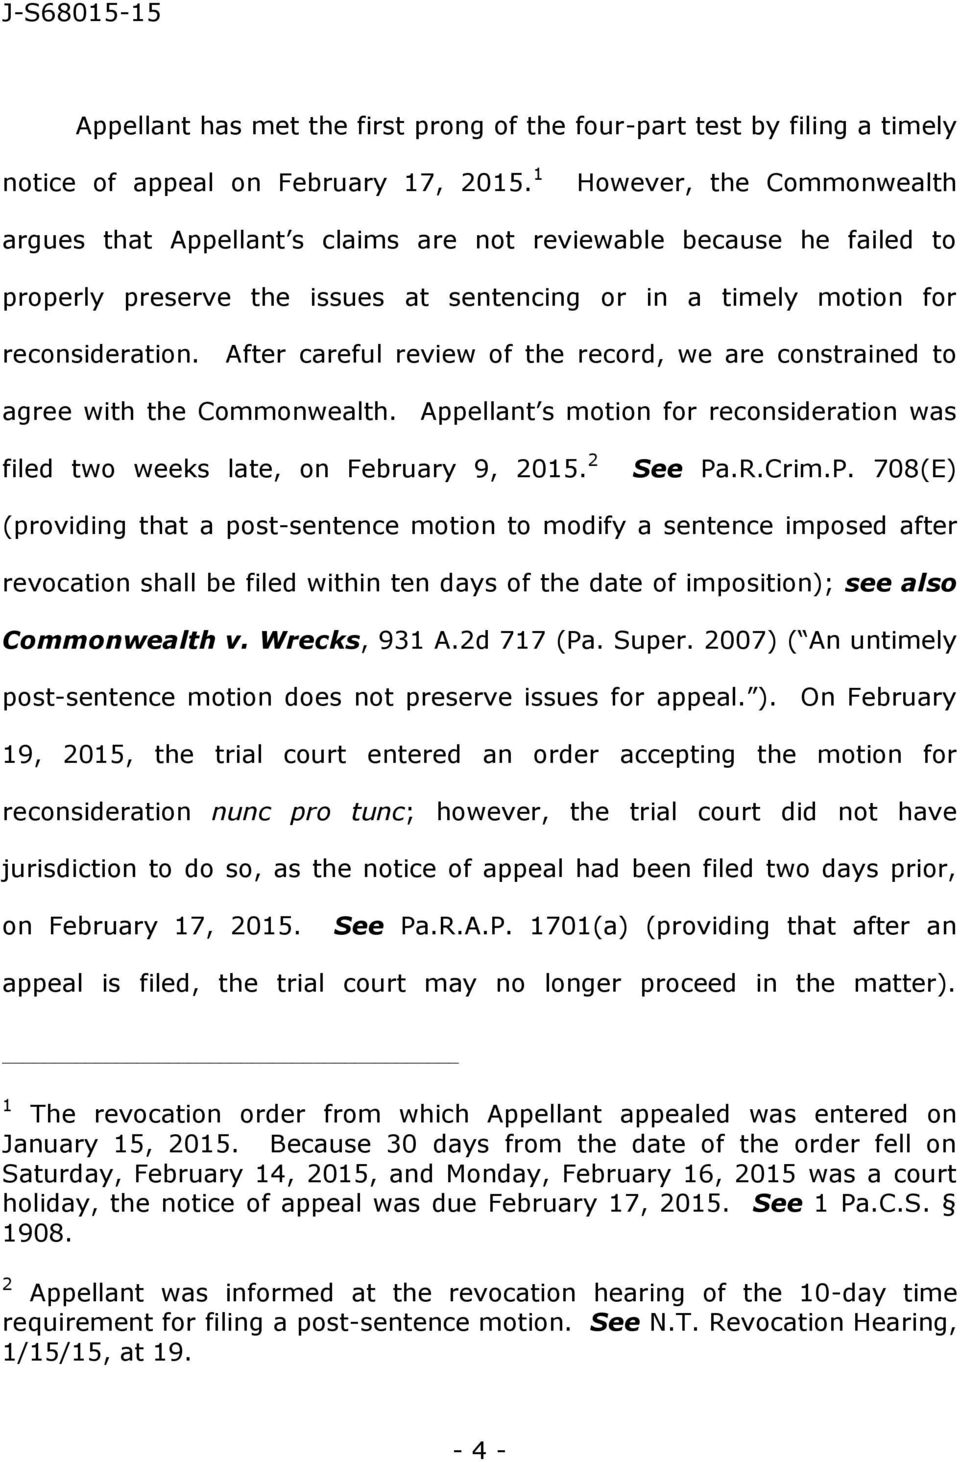 After careful review of the record, we are constrained to agree with the Commonwealth. Appellant s motion for reconsideration was filed two weeks late, on February 9, 2015. 2 See Pa